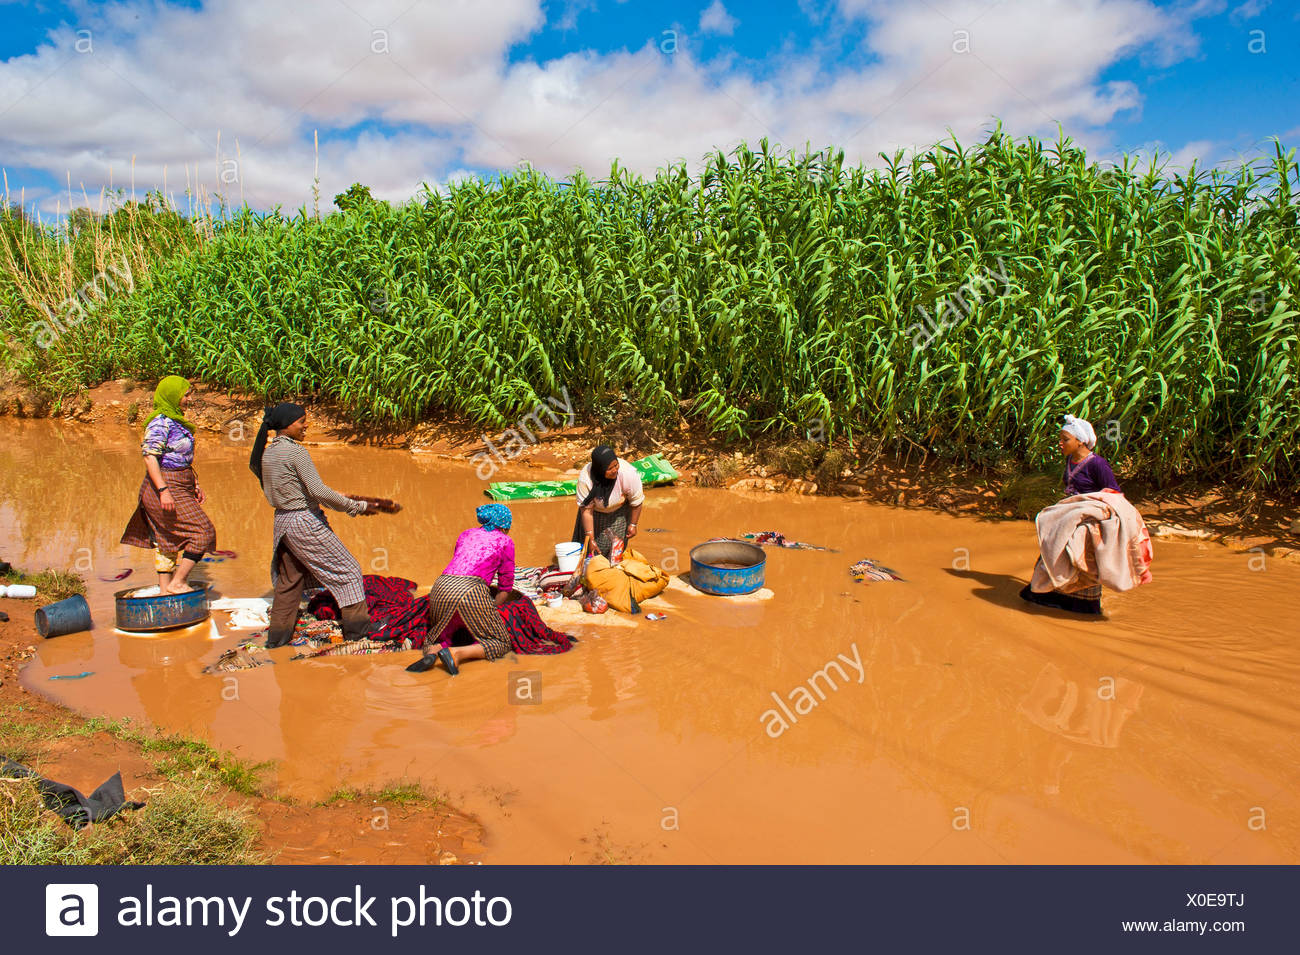 Doing Laundry In River Stock Photos & Doing Laundry In River Stock ...